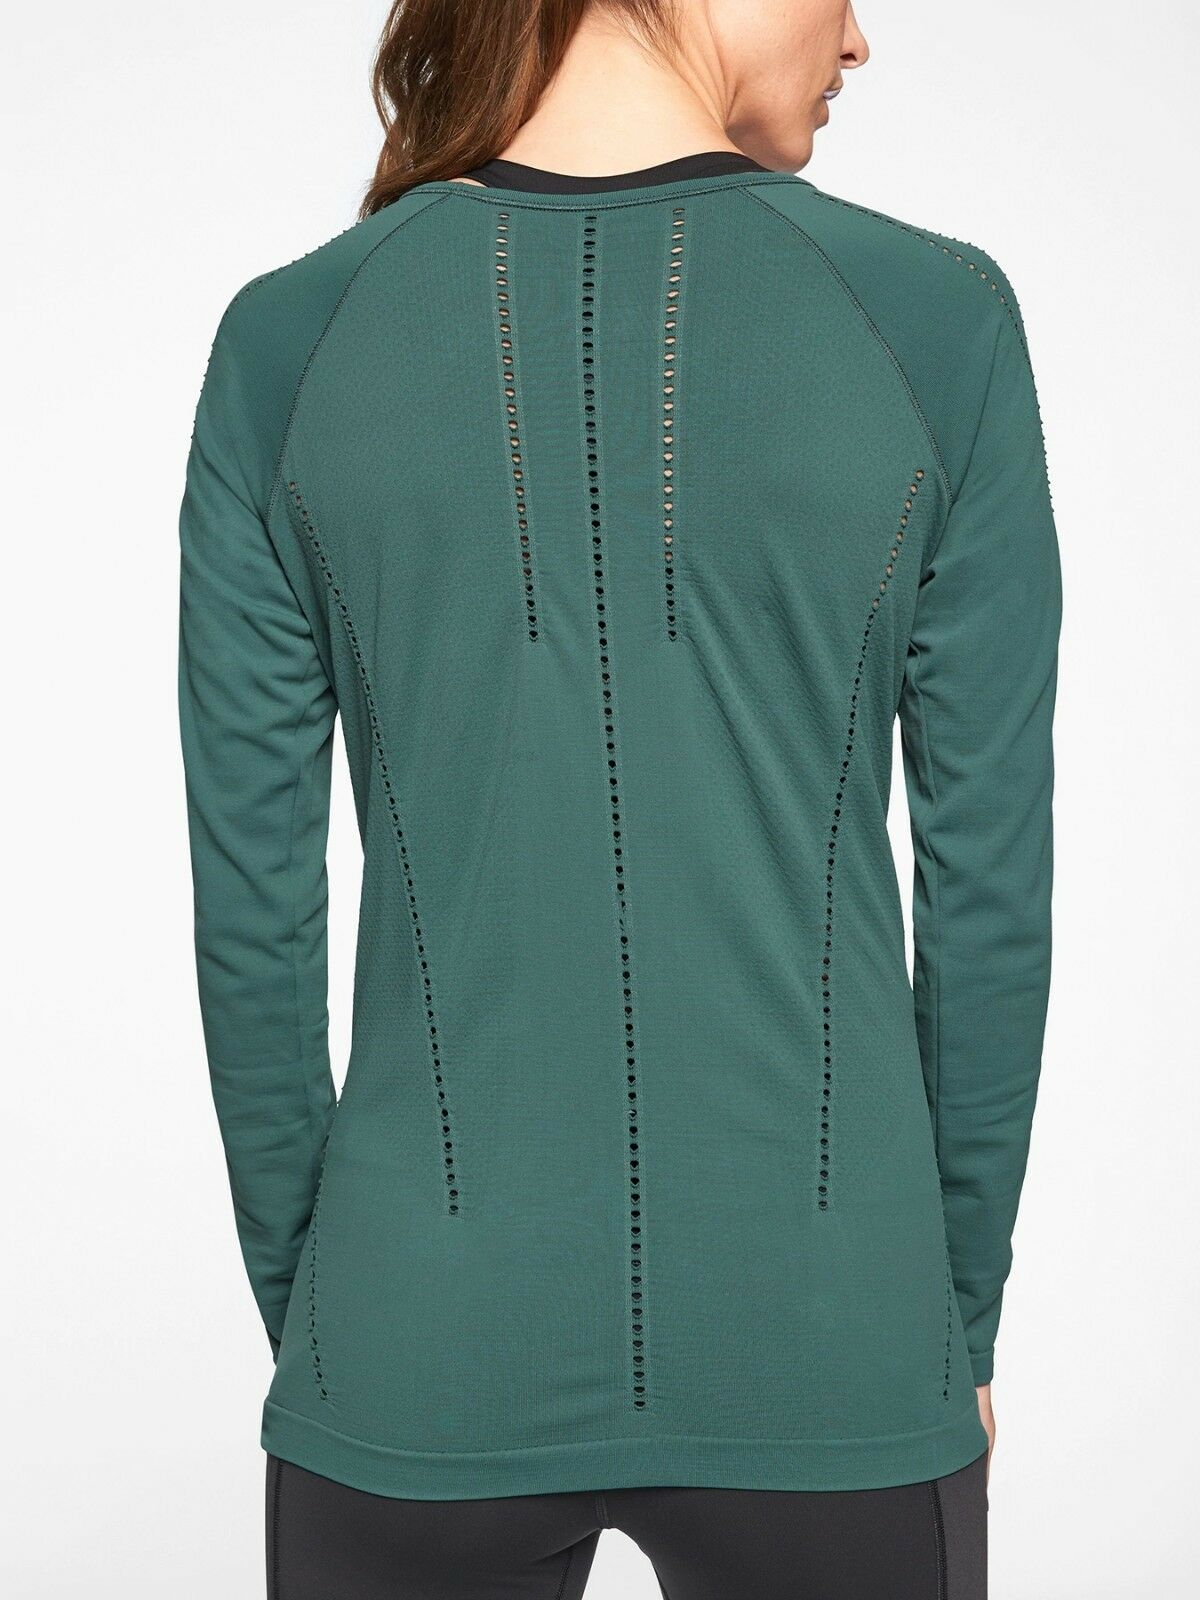 NWT Athleta Foothill Long Sleeve Top, Dark Jade SIZE XS     N0117 N0302